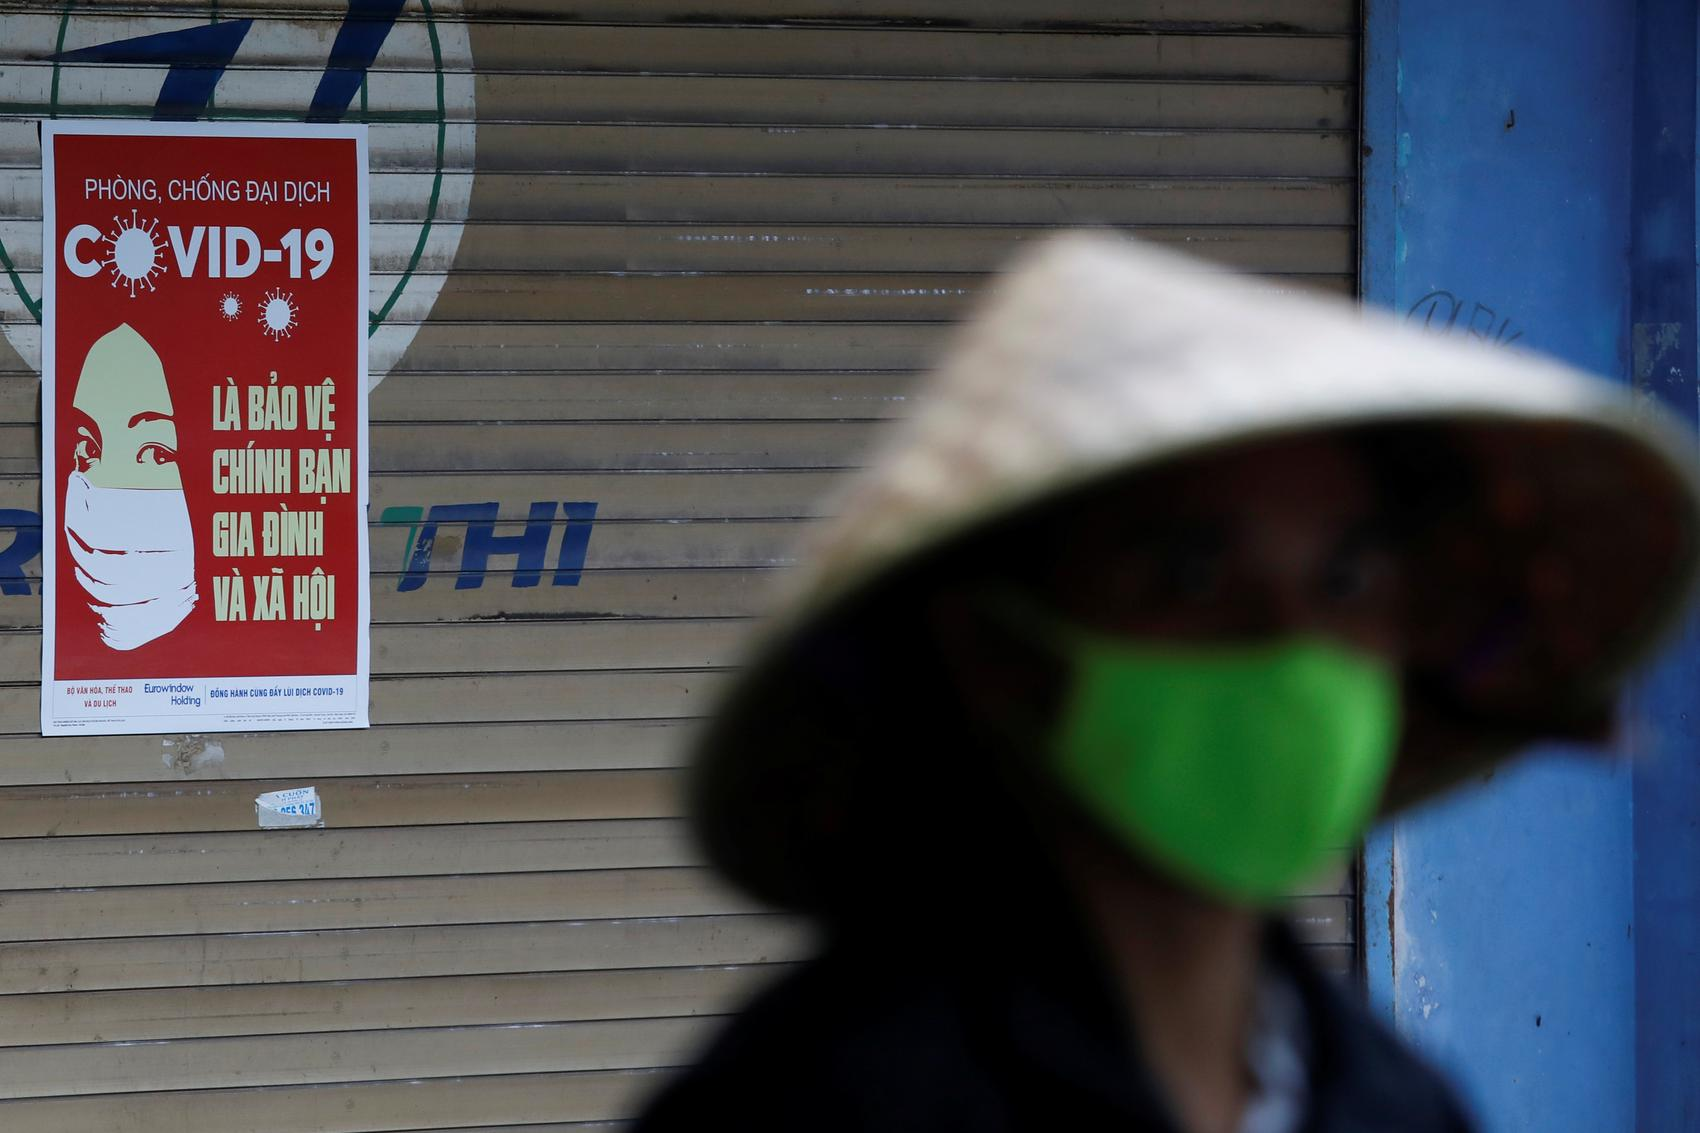 Vietnam opts for containment over 'high risk' rush for costly vaccine